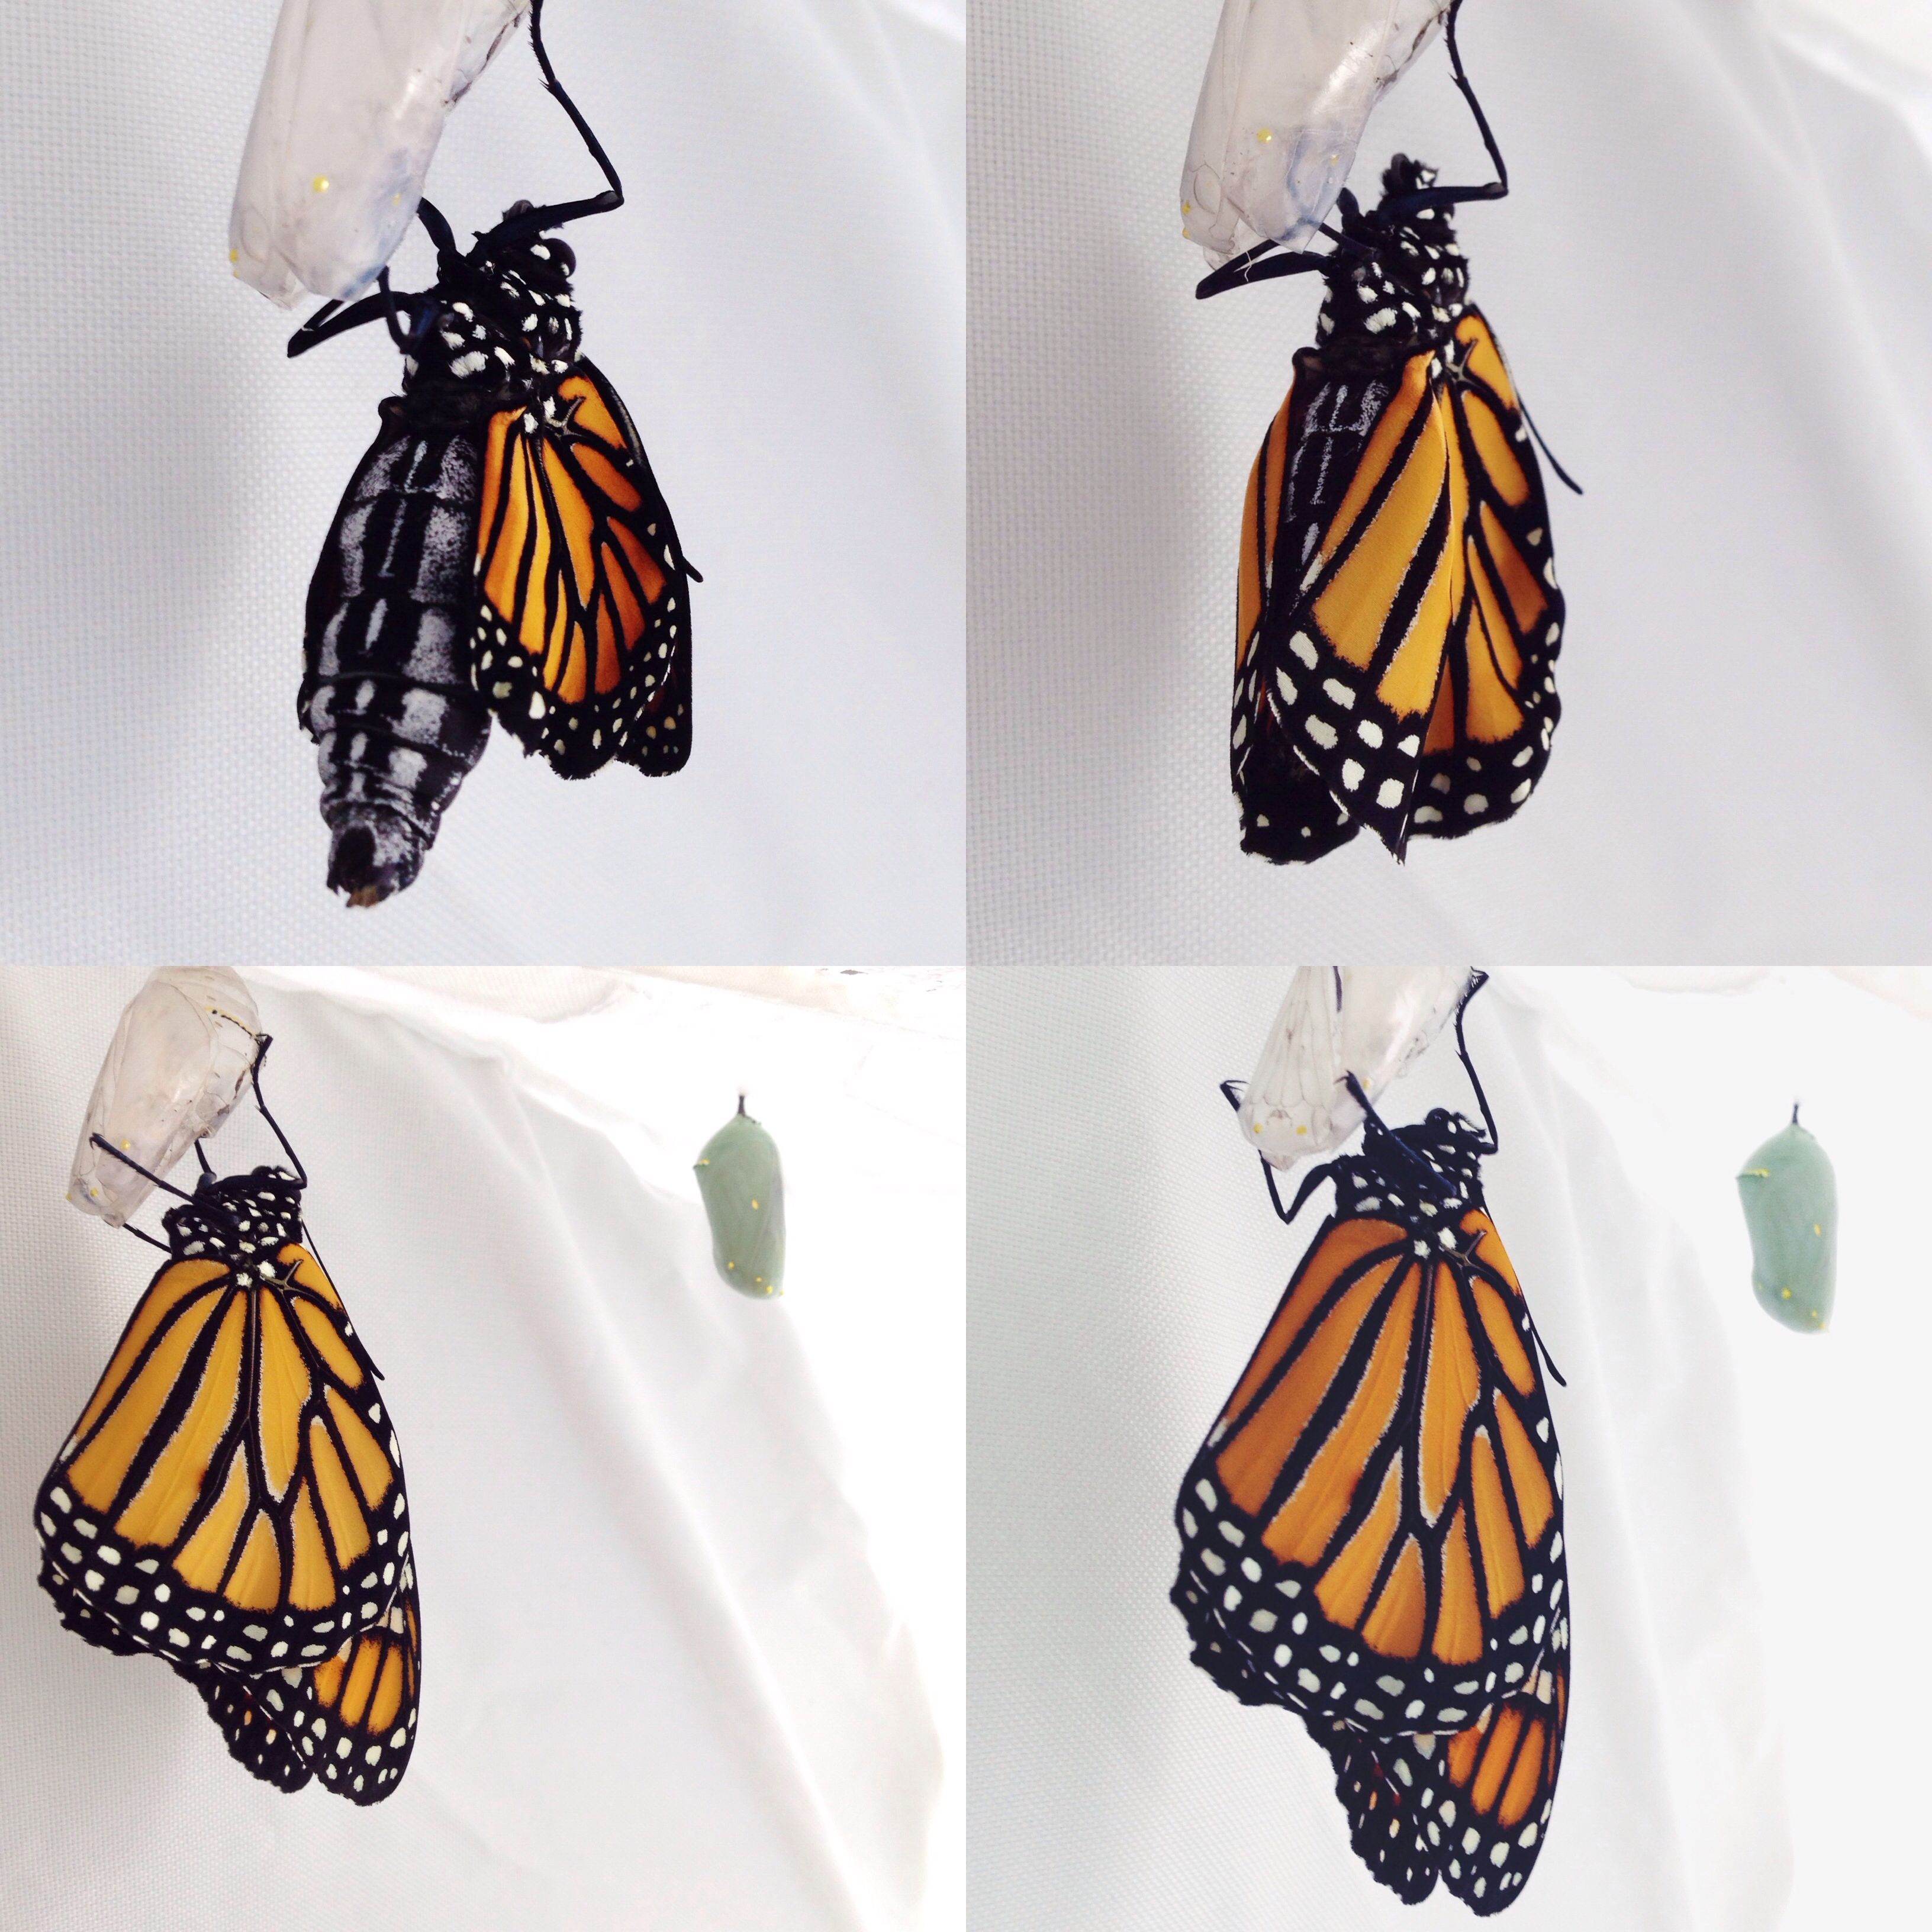 monarch butterfly eclosing from its chrysalis by golly bard as